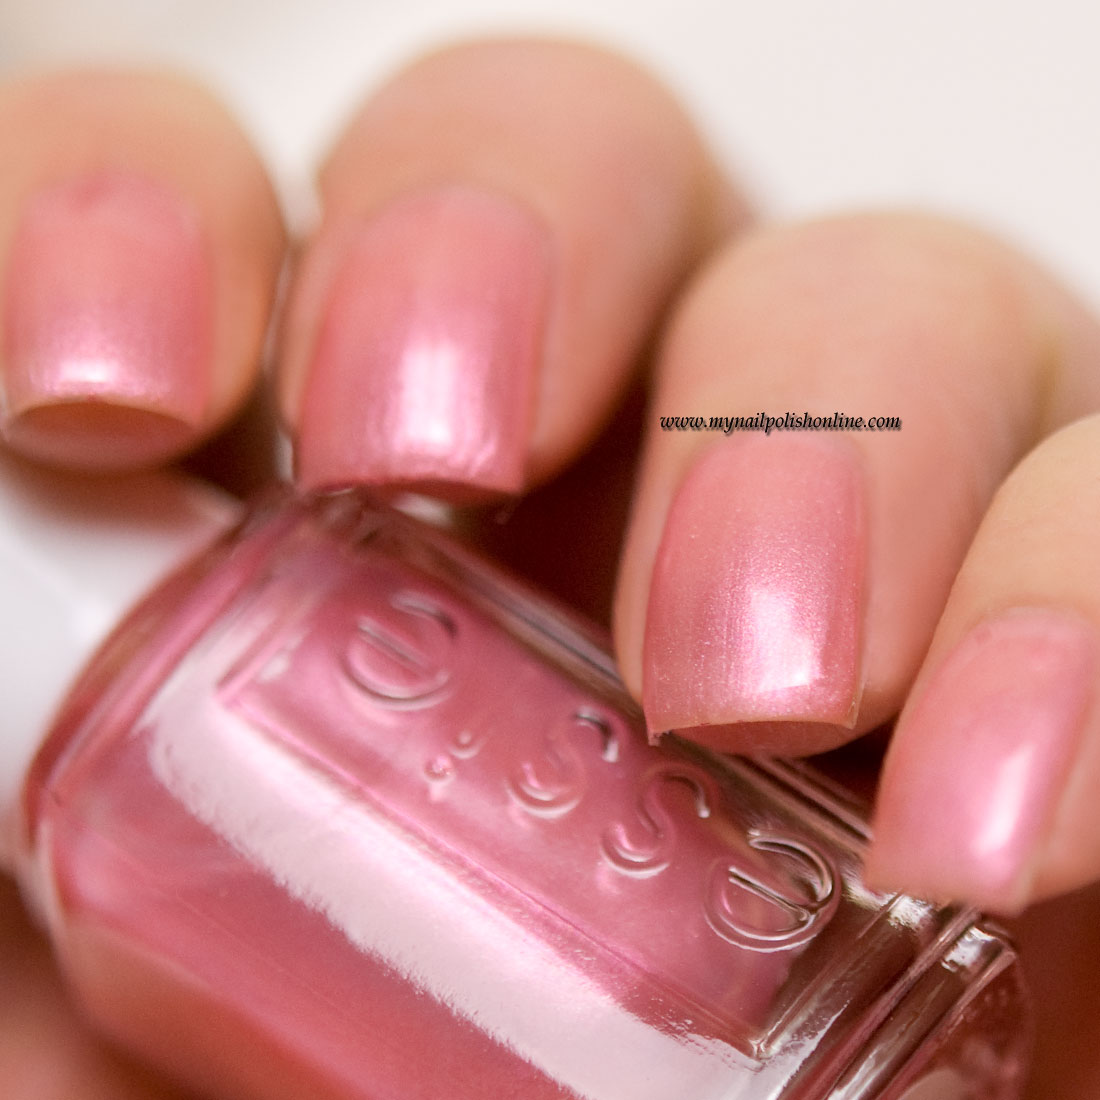 Essie - Bikini with a martini - My Nail Polish Online